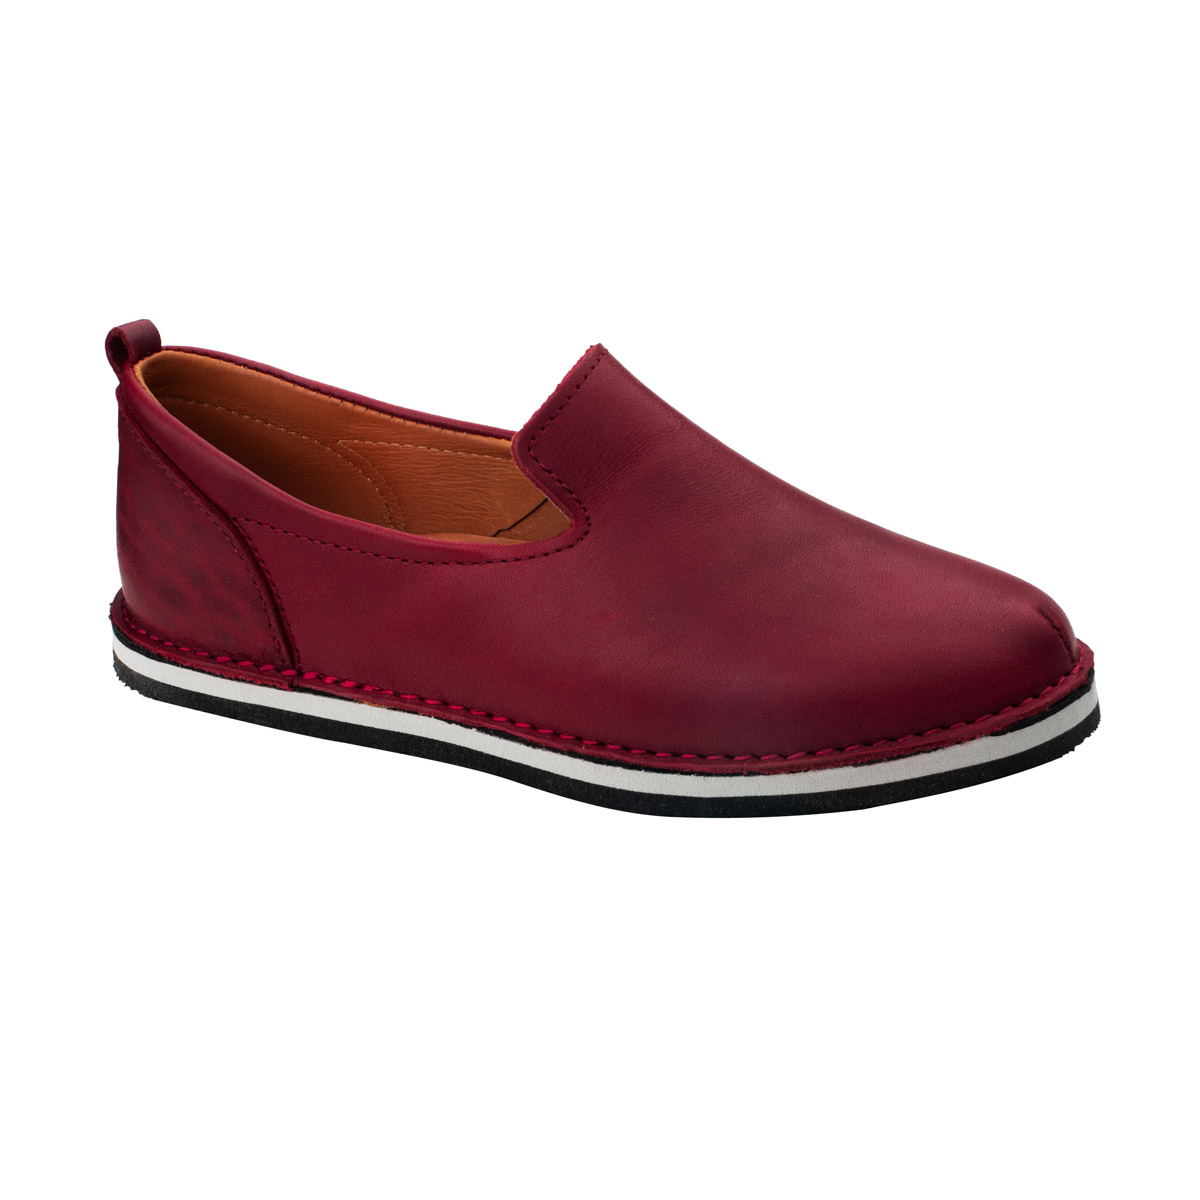 London bordeaux ethically made shoes